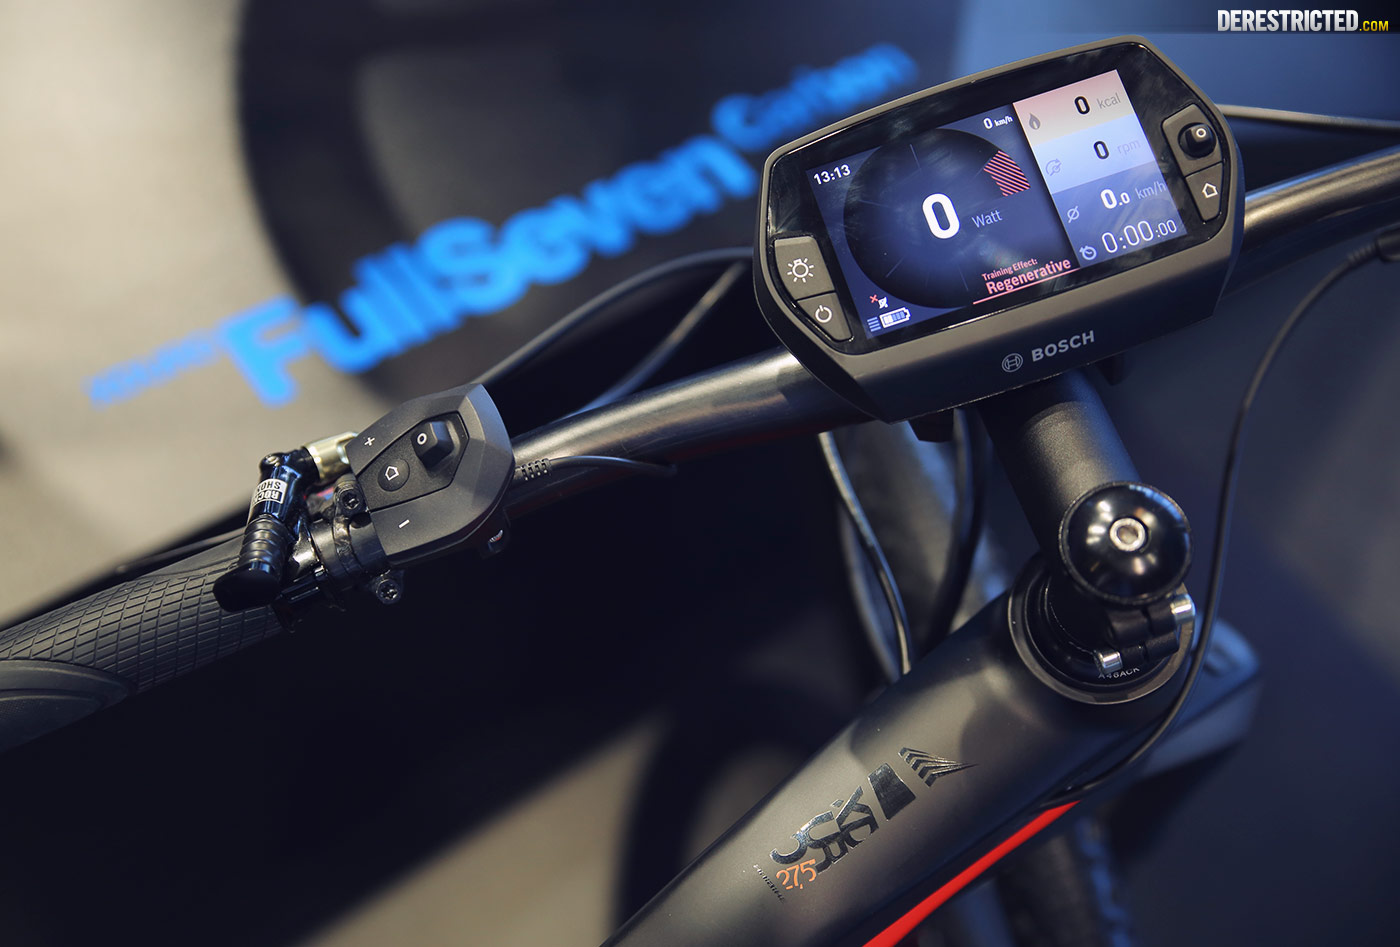 haibike-bosch-display